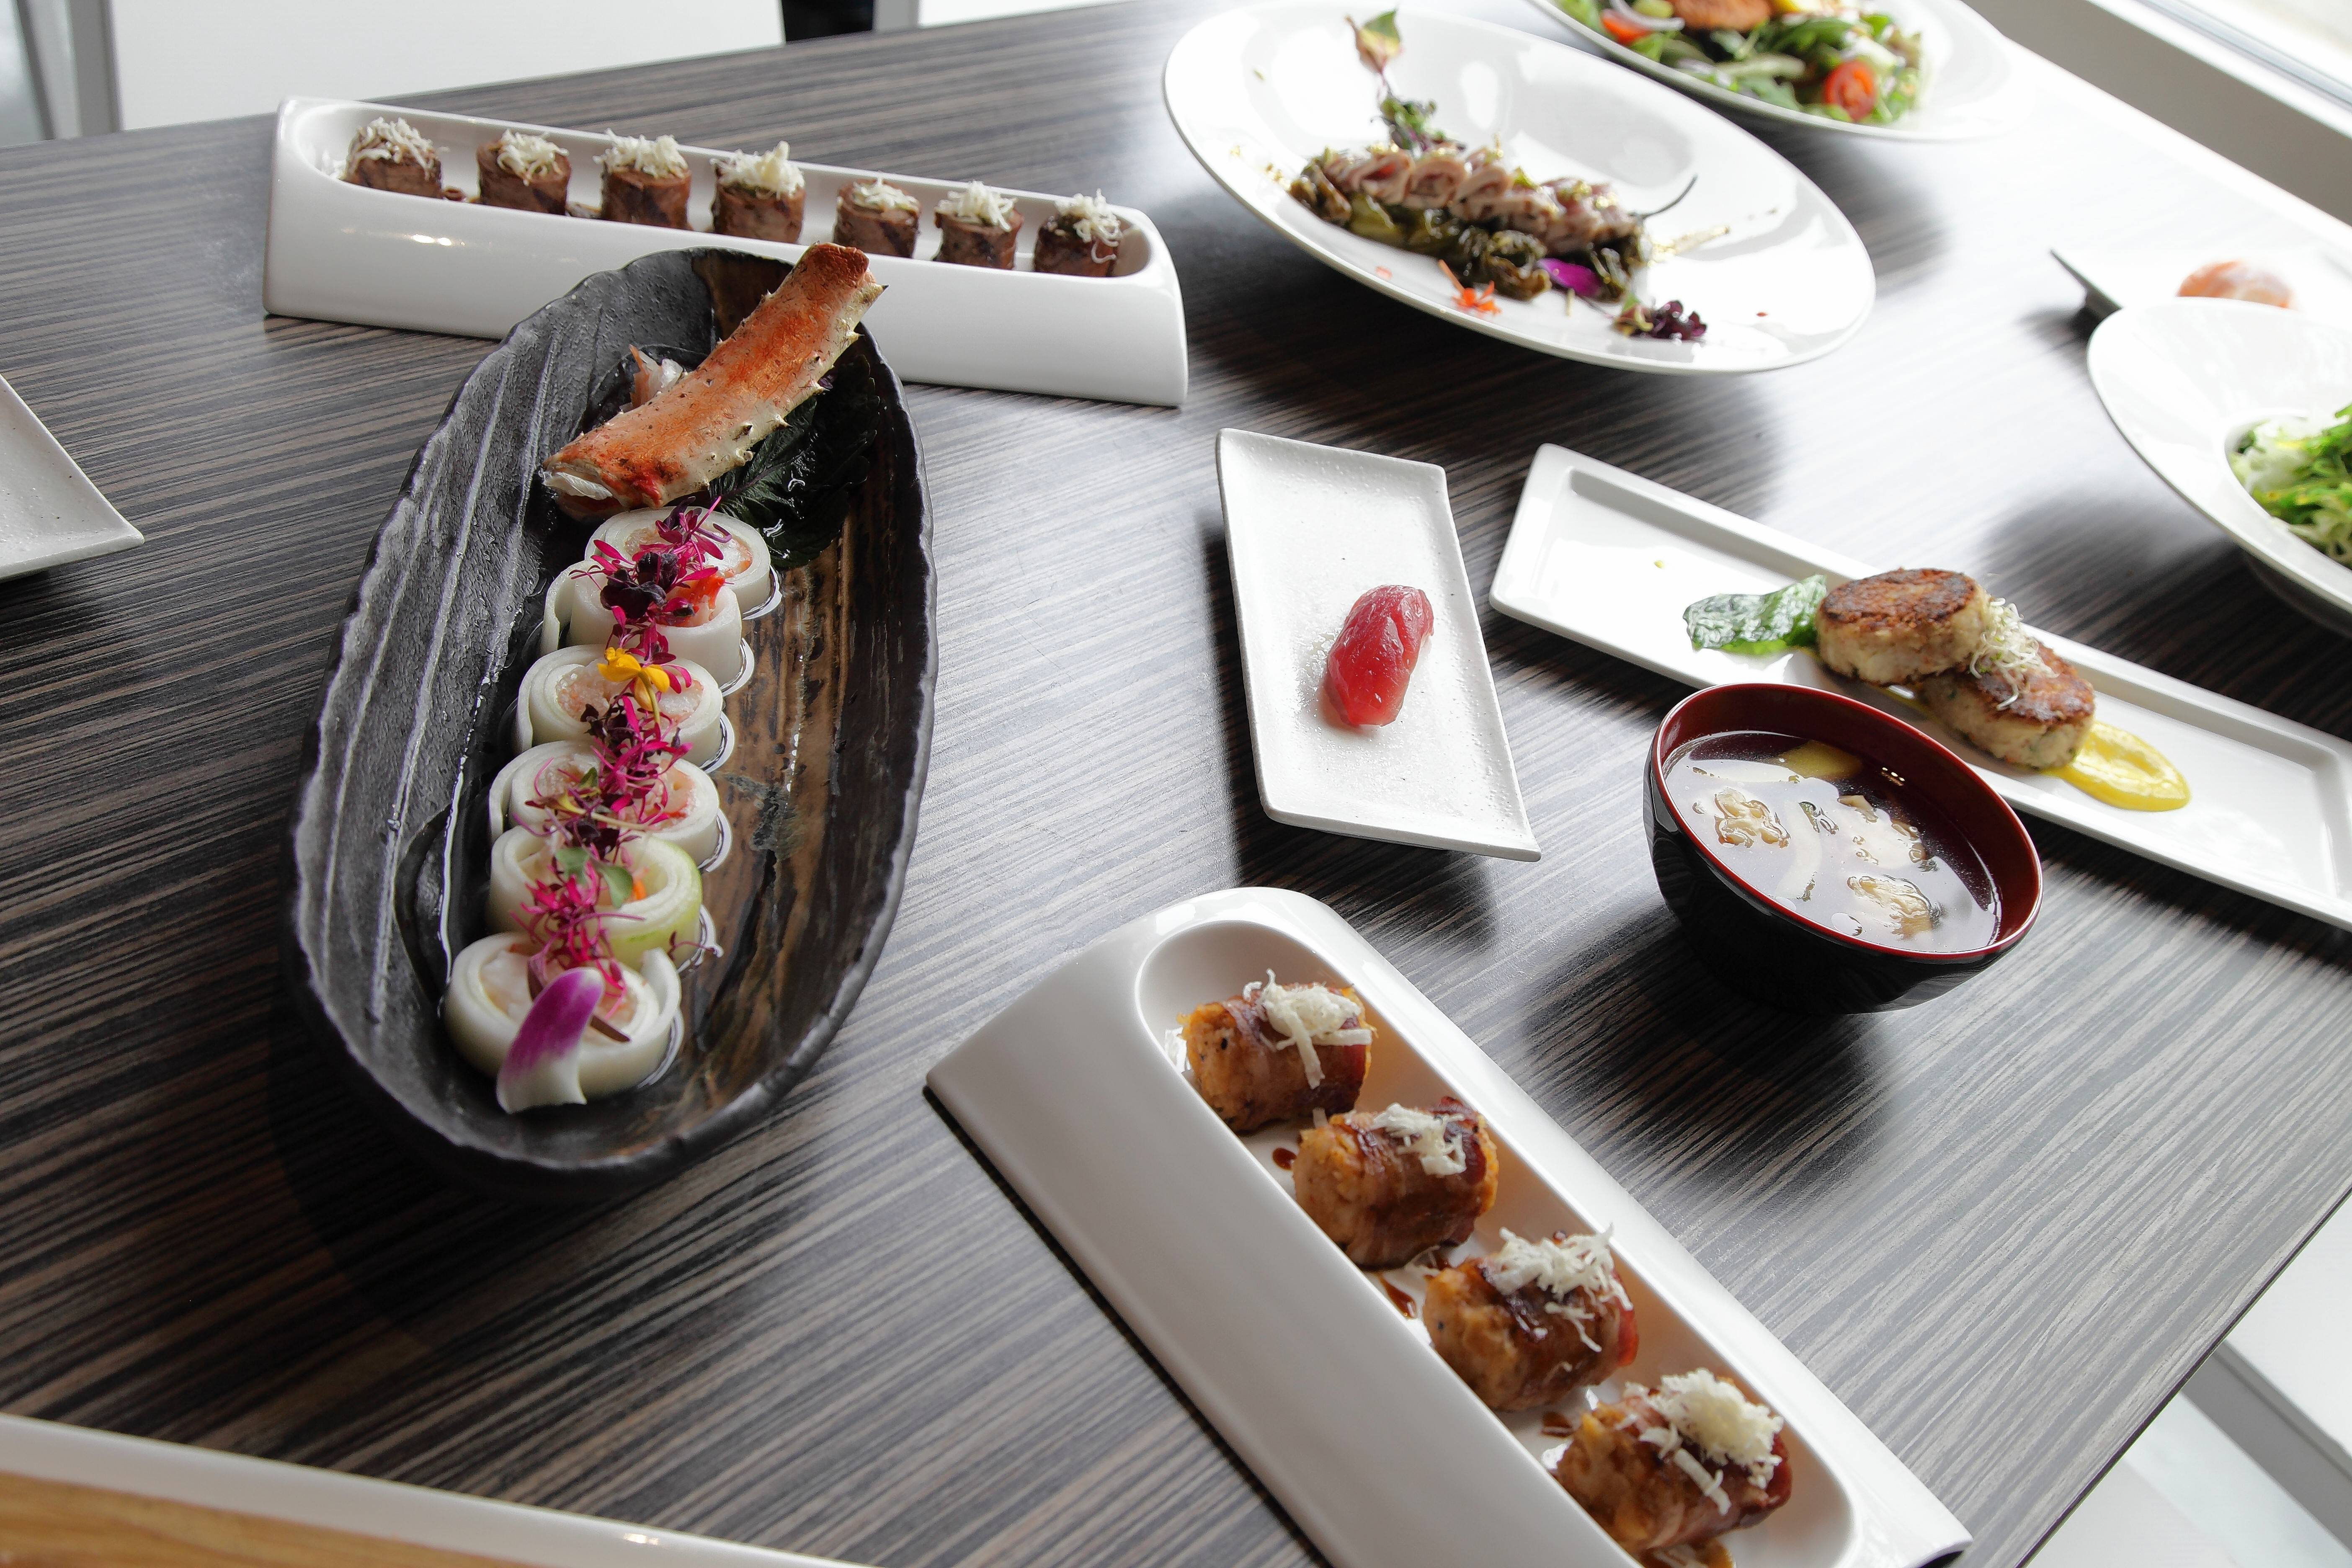 You can make a meal out of all the small plates on the appetizer menu at Shakou.